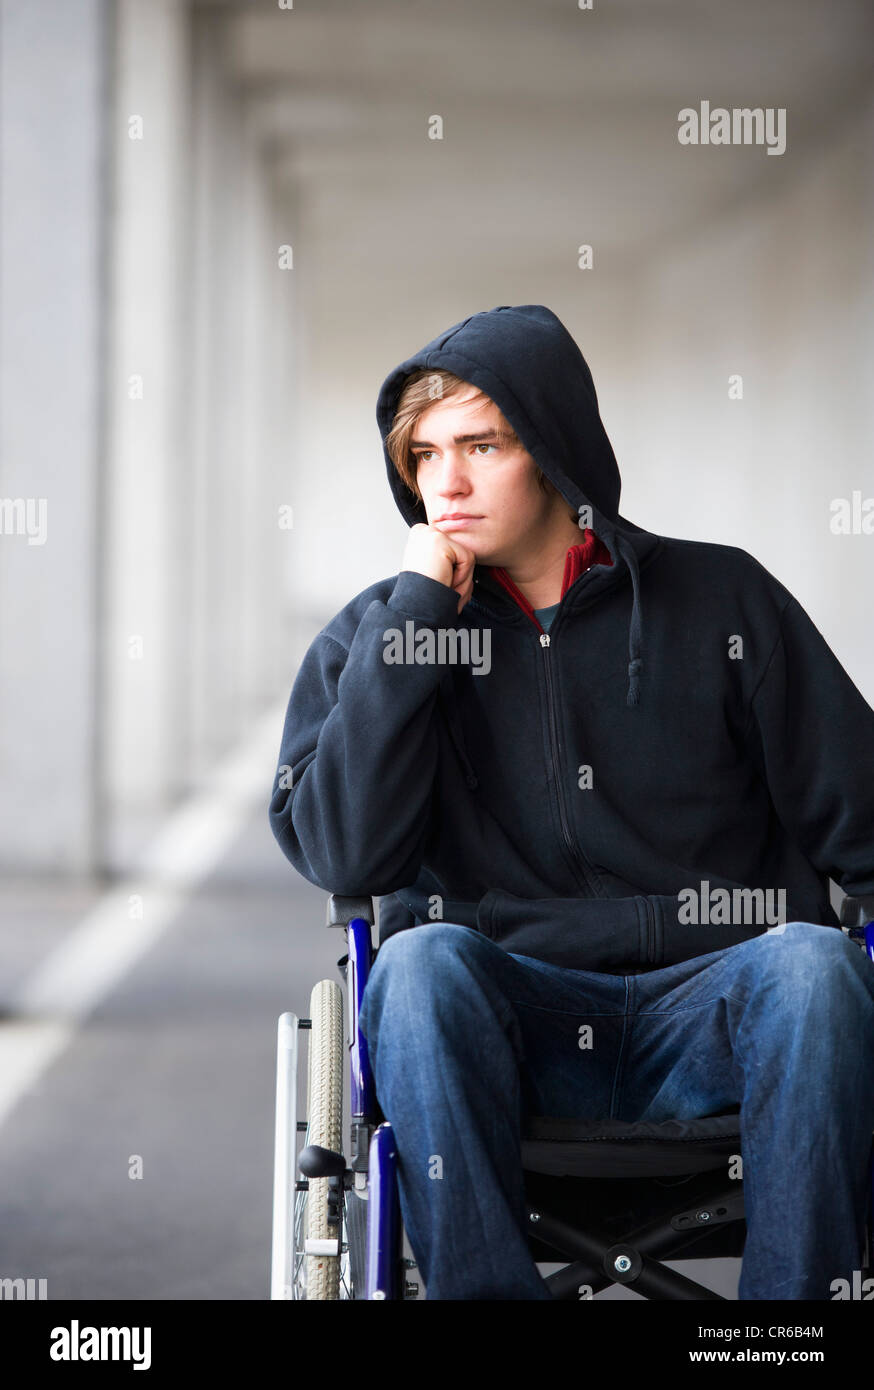 Austria, Mondsee, Young man sitting on wheelchair at subway - Stock Image